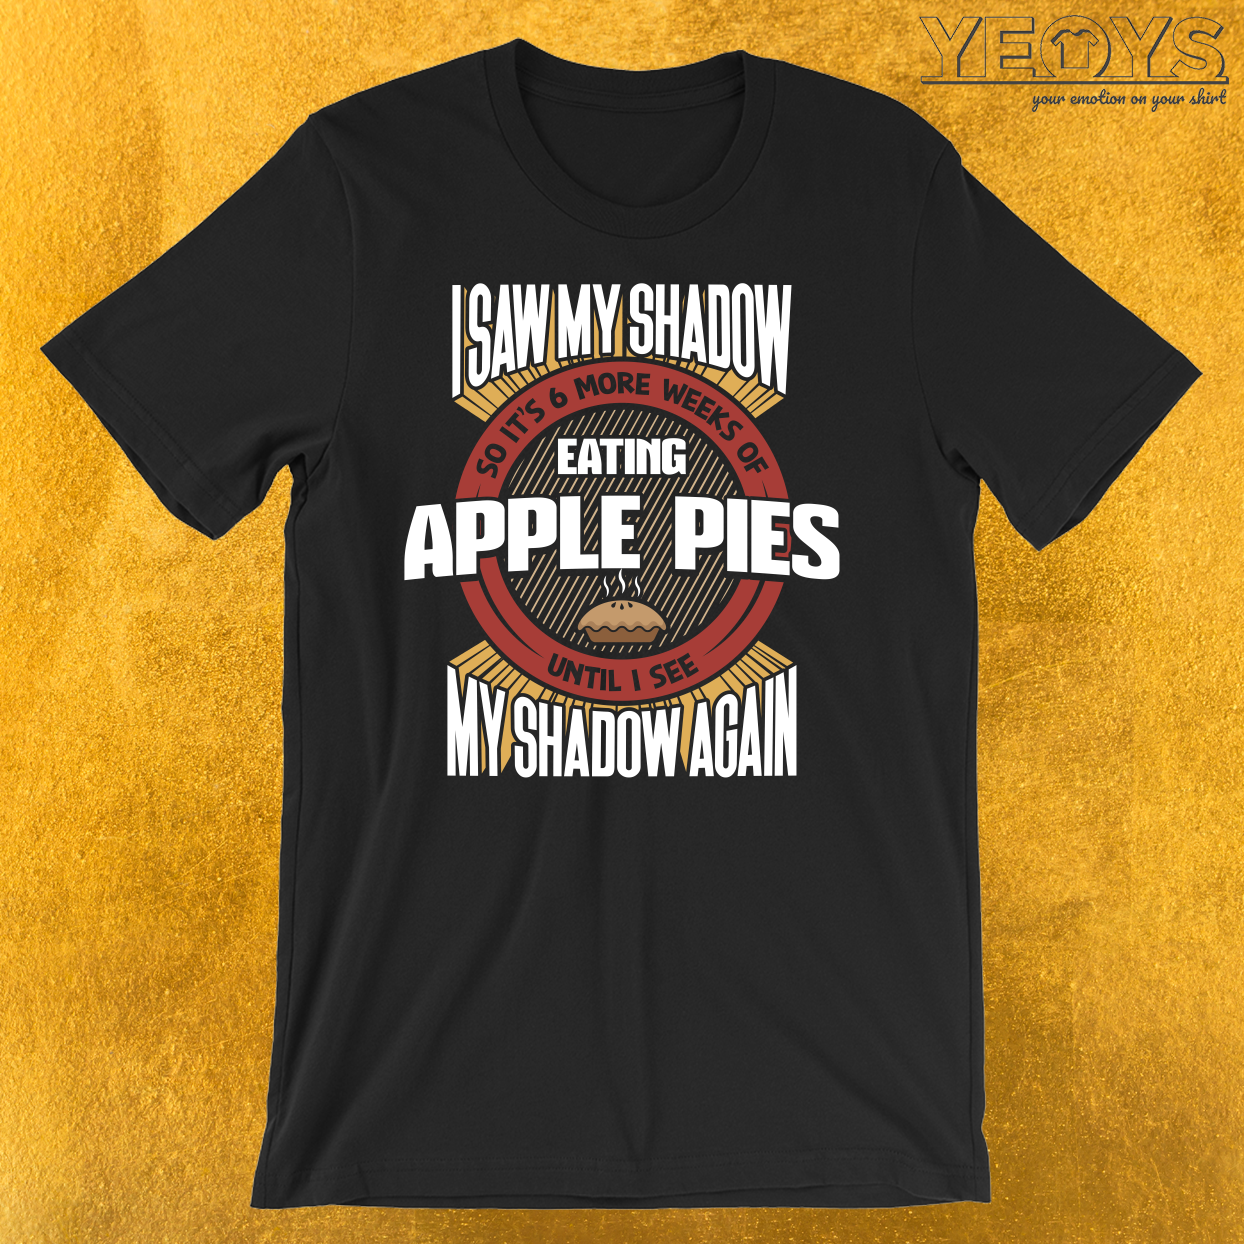 6 More Weeks Of Eating Apple Pies T-Shirt